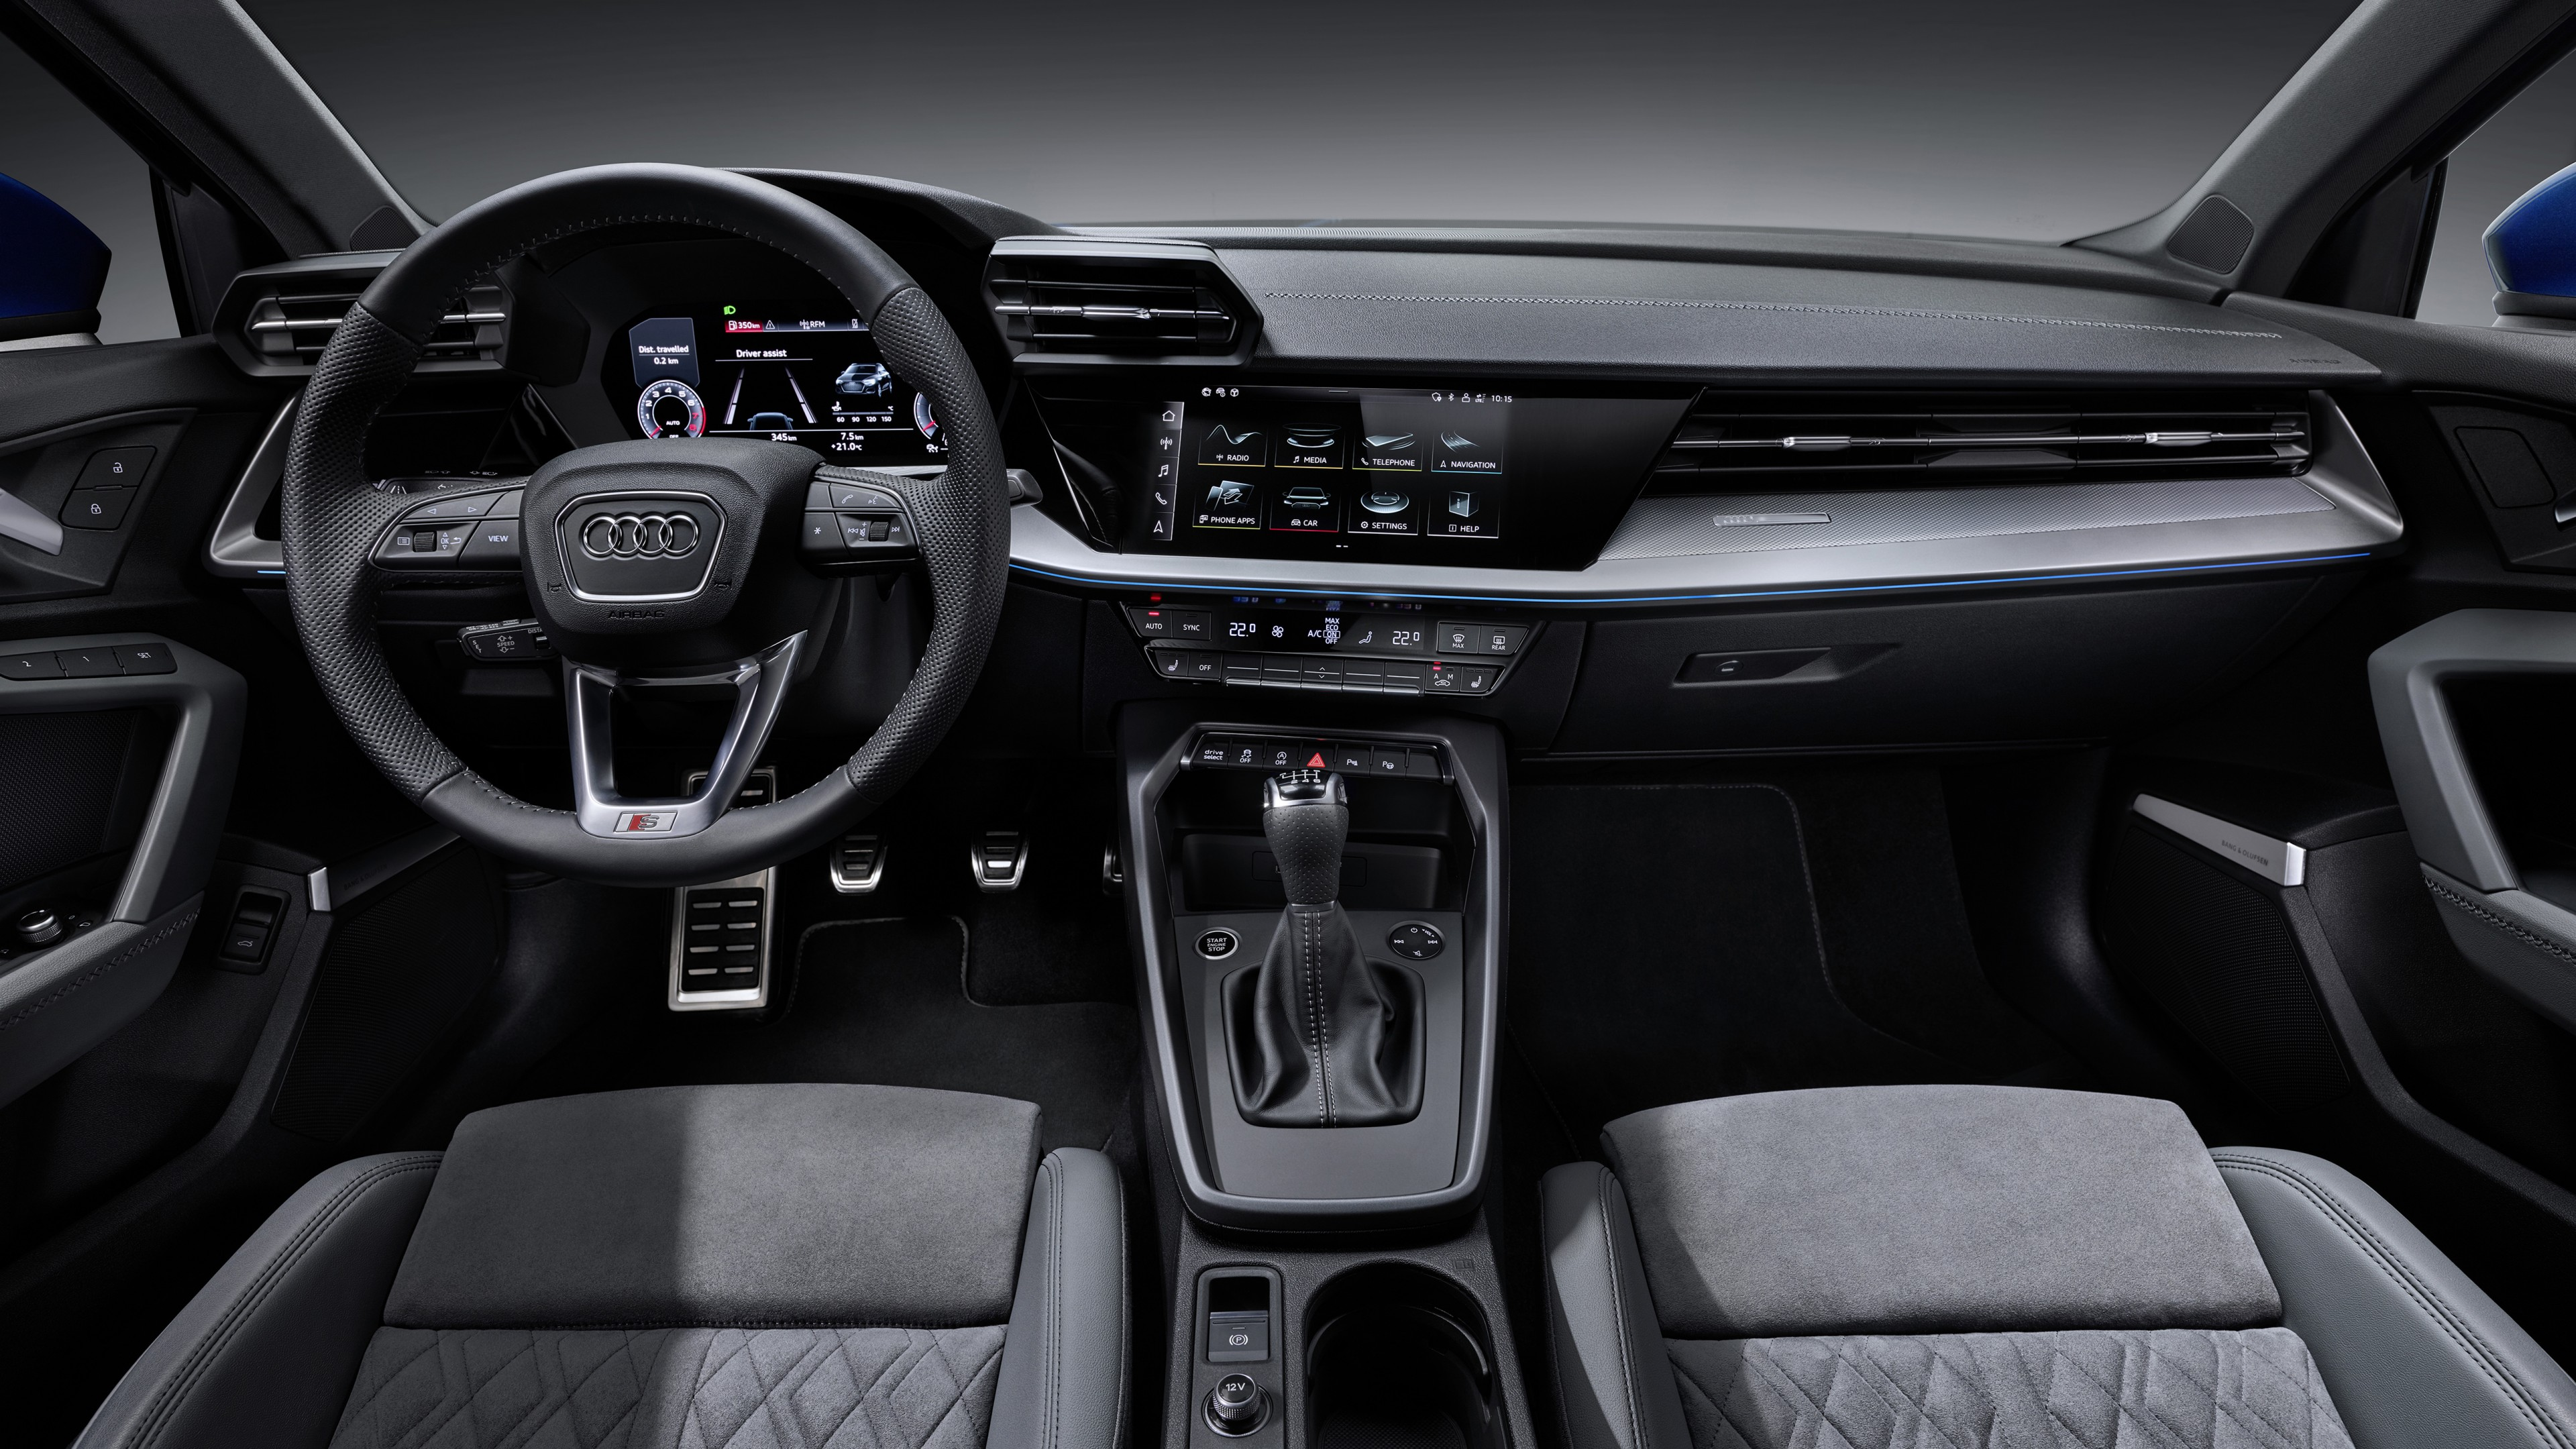 Audi A3 Sportback 35 Tfsi 2020 4k Interior Wallpaper Hd Car Wallpapers Id 14463